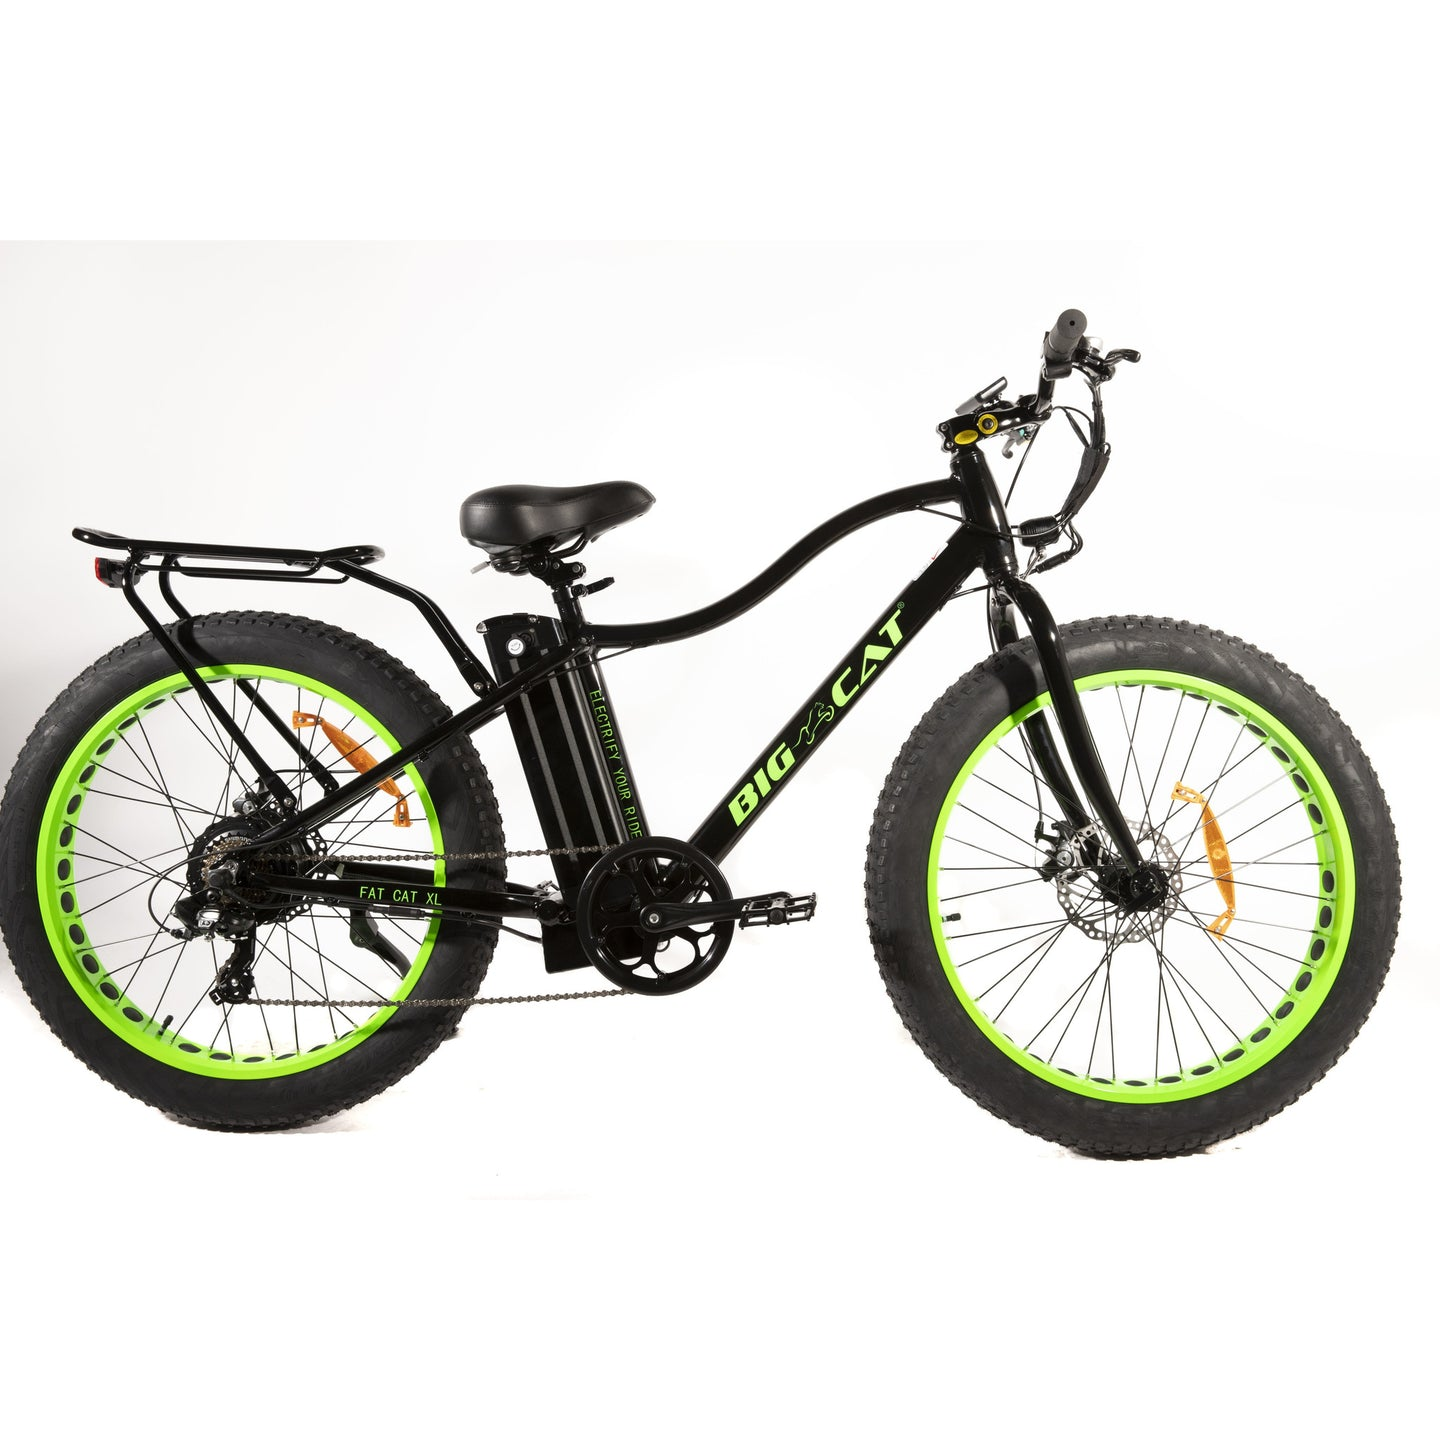 BIG CAT® 2019 Fat Cat XL Electric Fat Tire Bike- Hybrid in Stock